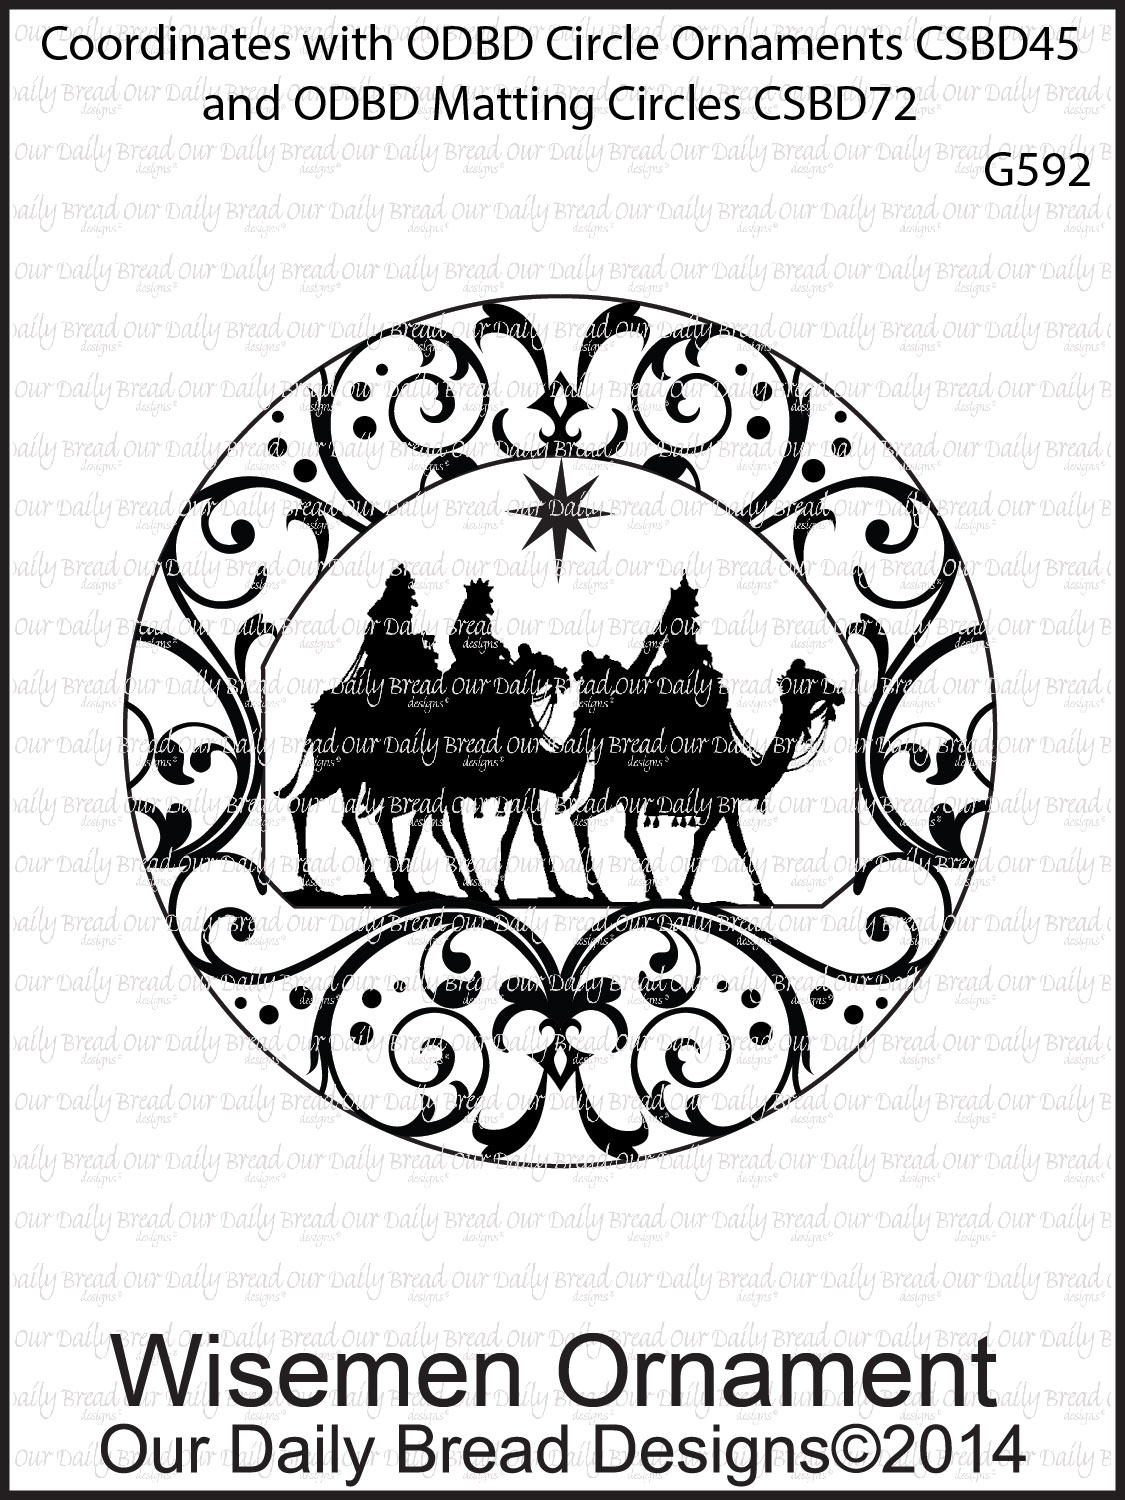 Stamps - Our Daily Bread Designs Wisemen Ornament